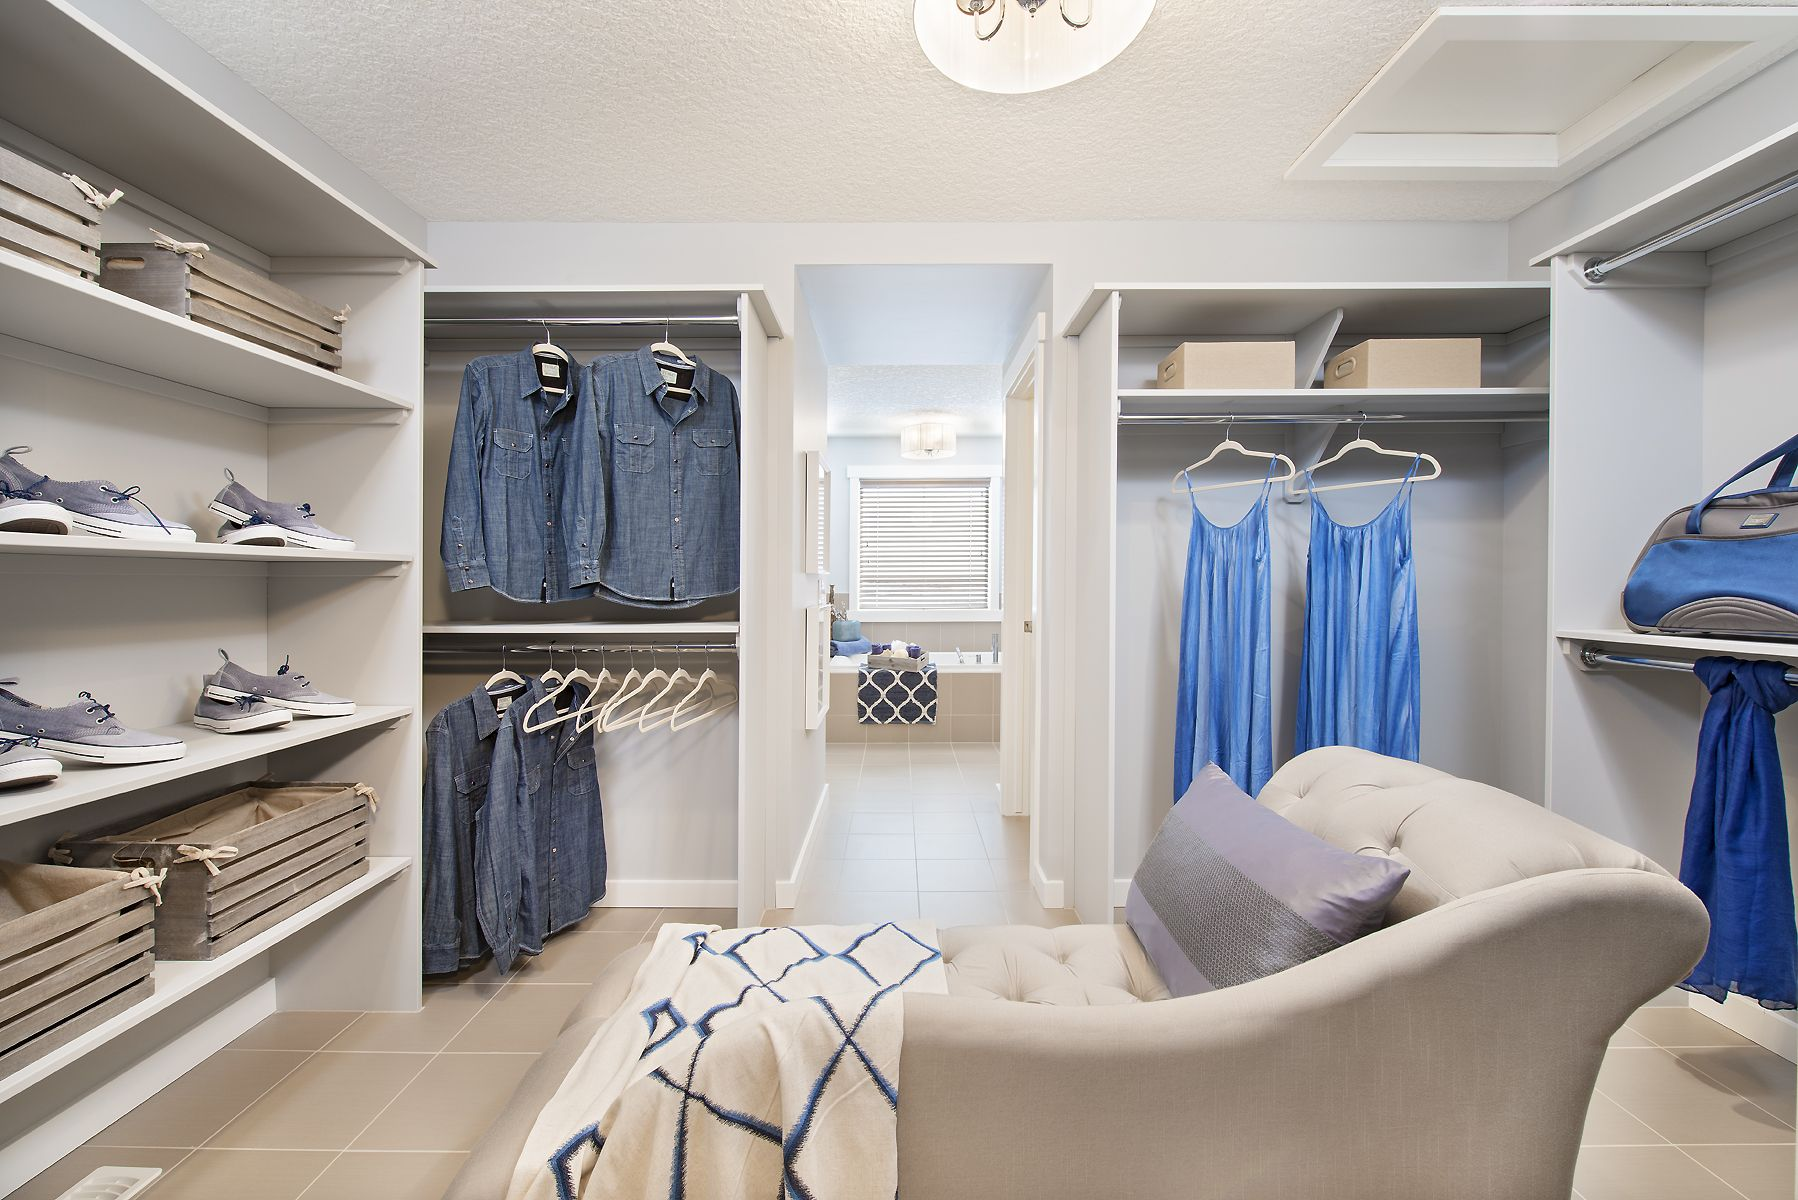 walk-in closet w/ lounge area   New home builders, Finding ...